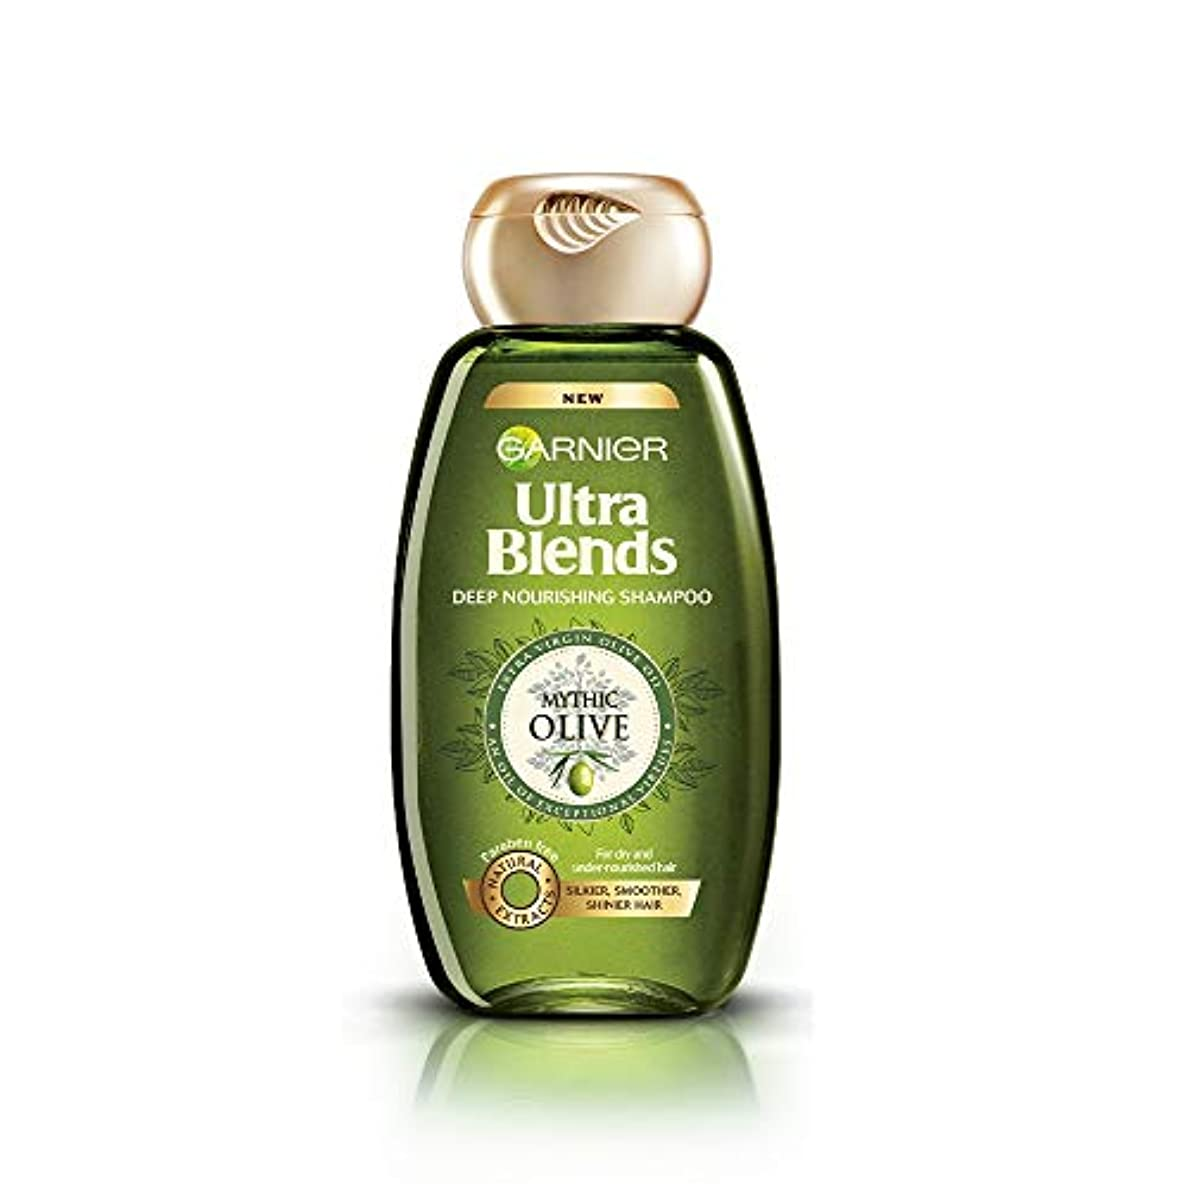 哀話す我慢するGarnier Ultra Blends Shampoo, Mythic Olive, 360ml